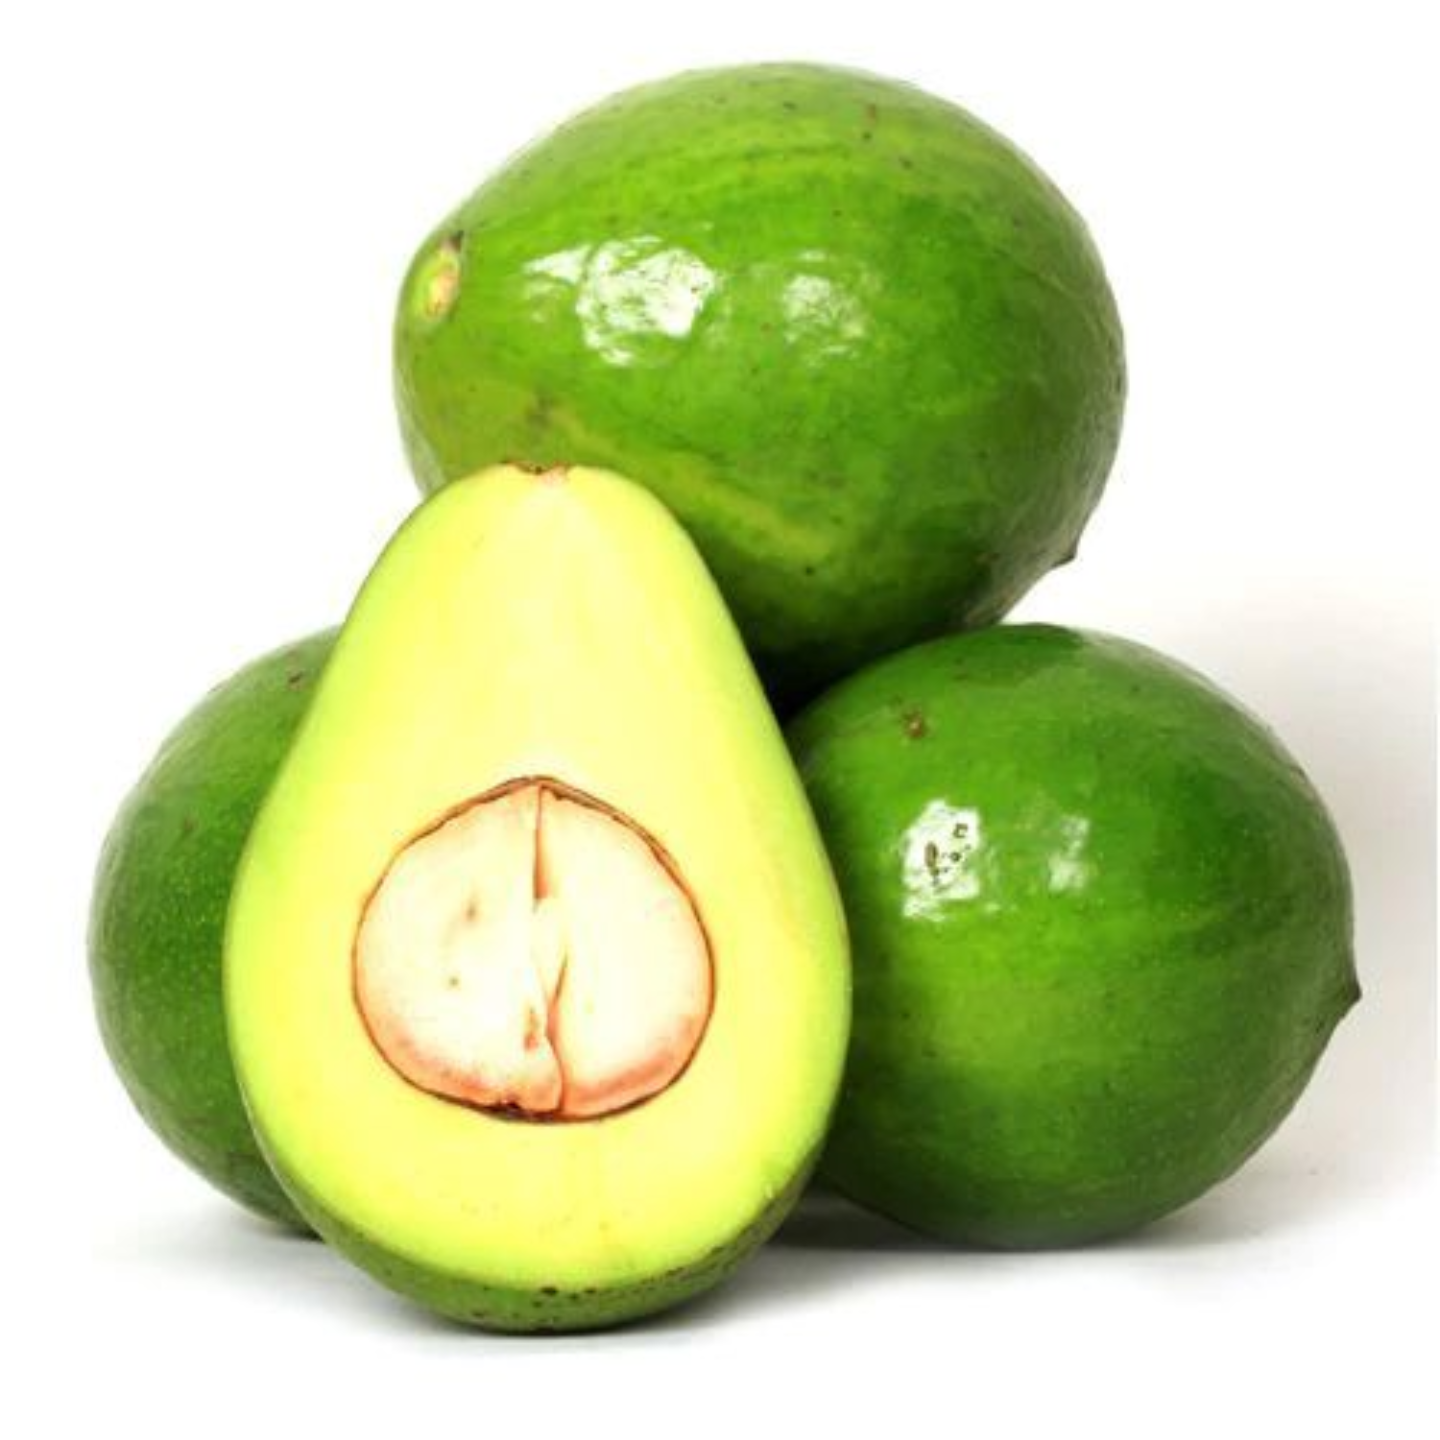 AVOCADO - Butter Fruit - Organically Grown - 1 Kg